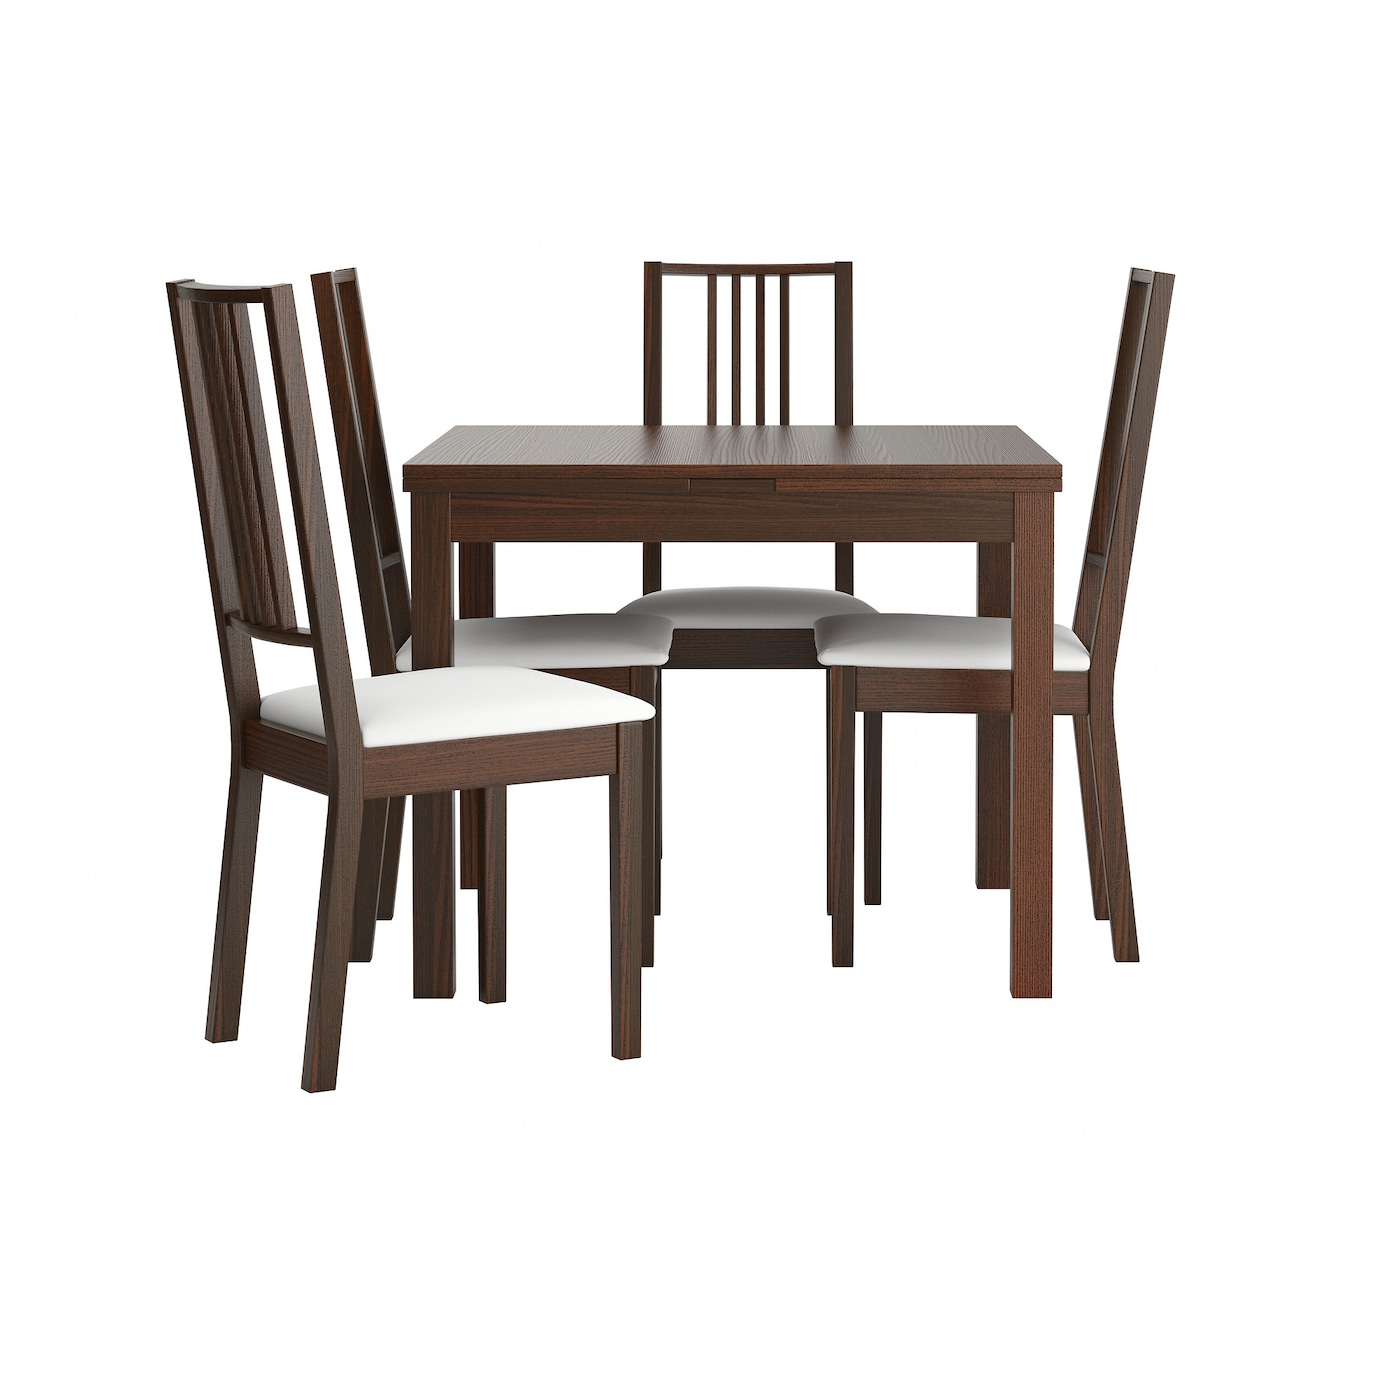 b rje bjursta table and 4 chairs brown gobo white 90 cm ikea. Black Bedroom Furniture Sets. Home Design Ideas